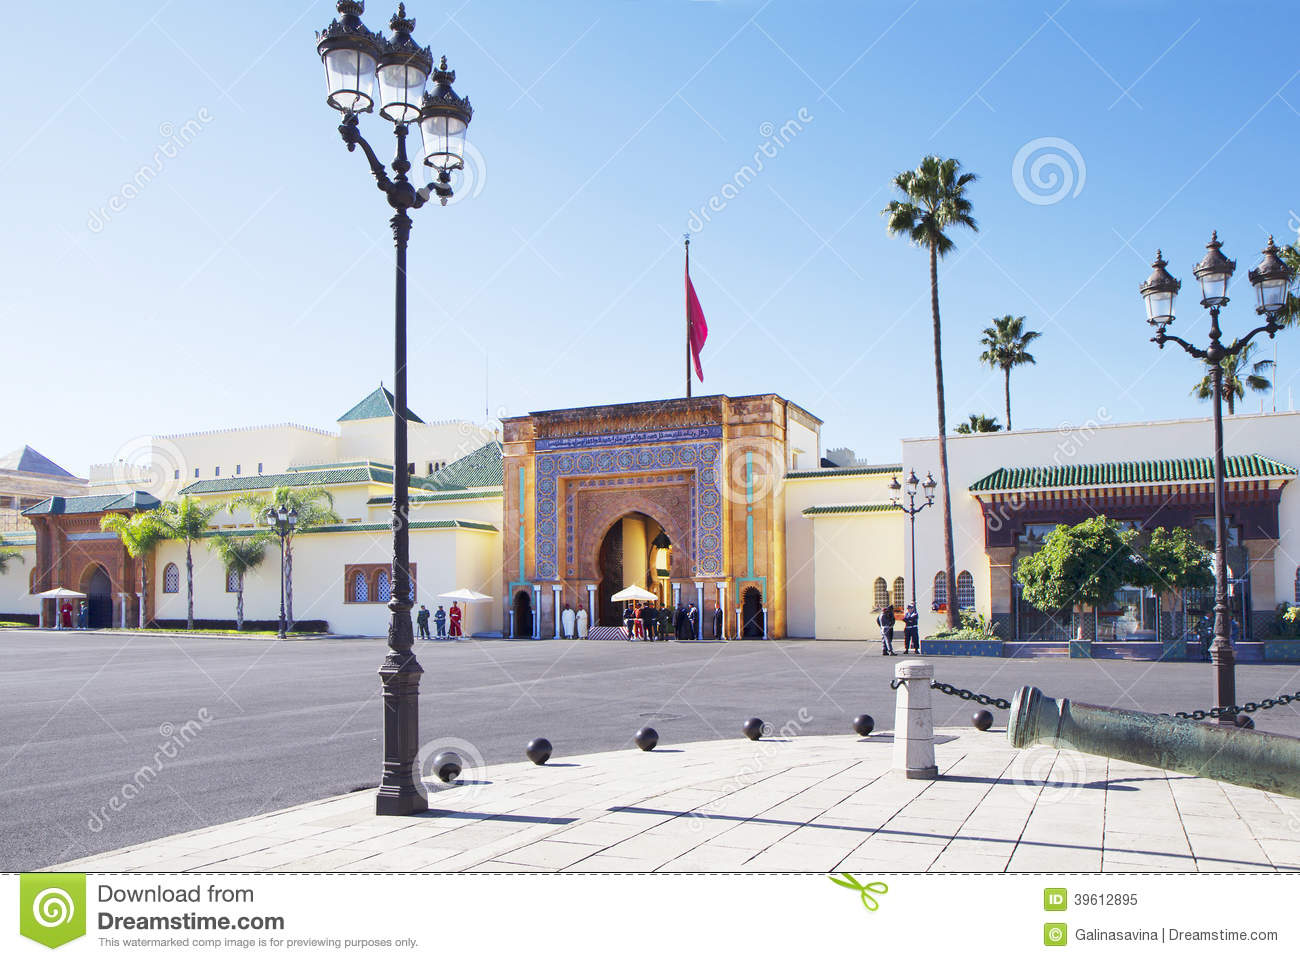 Royal Palace - the residence of the King of Morocco Mohammed VI - the ...